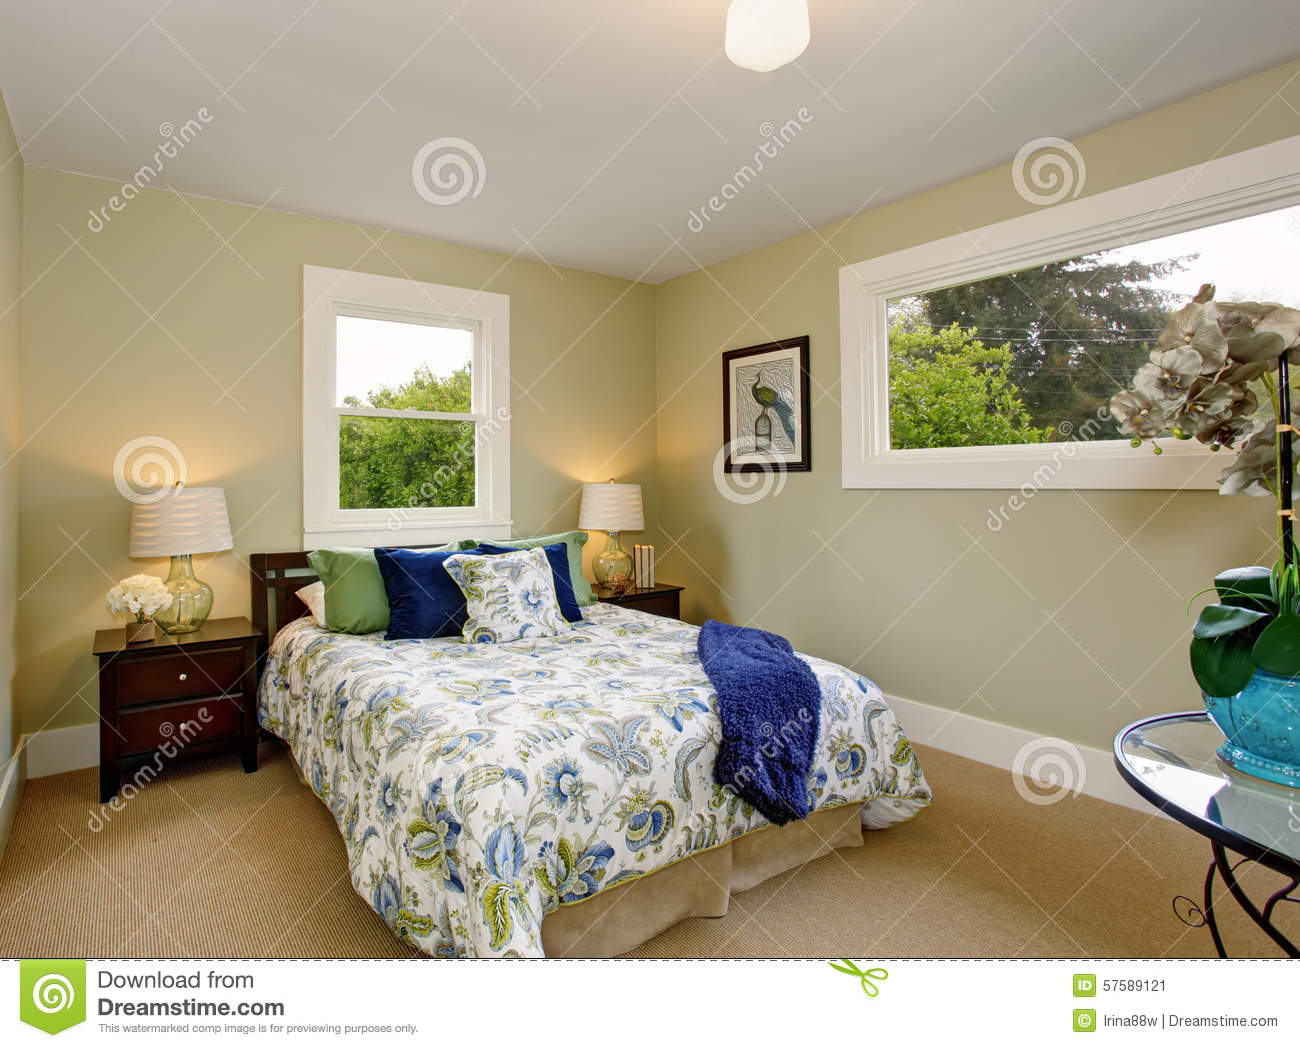 Modern Bedroom With Green And Blue Interior Decor Stock Photo Image 57589121